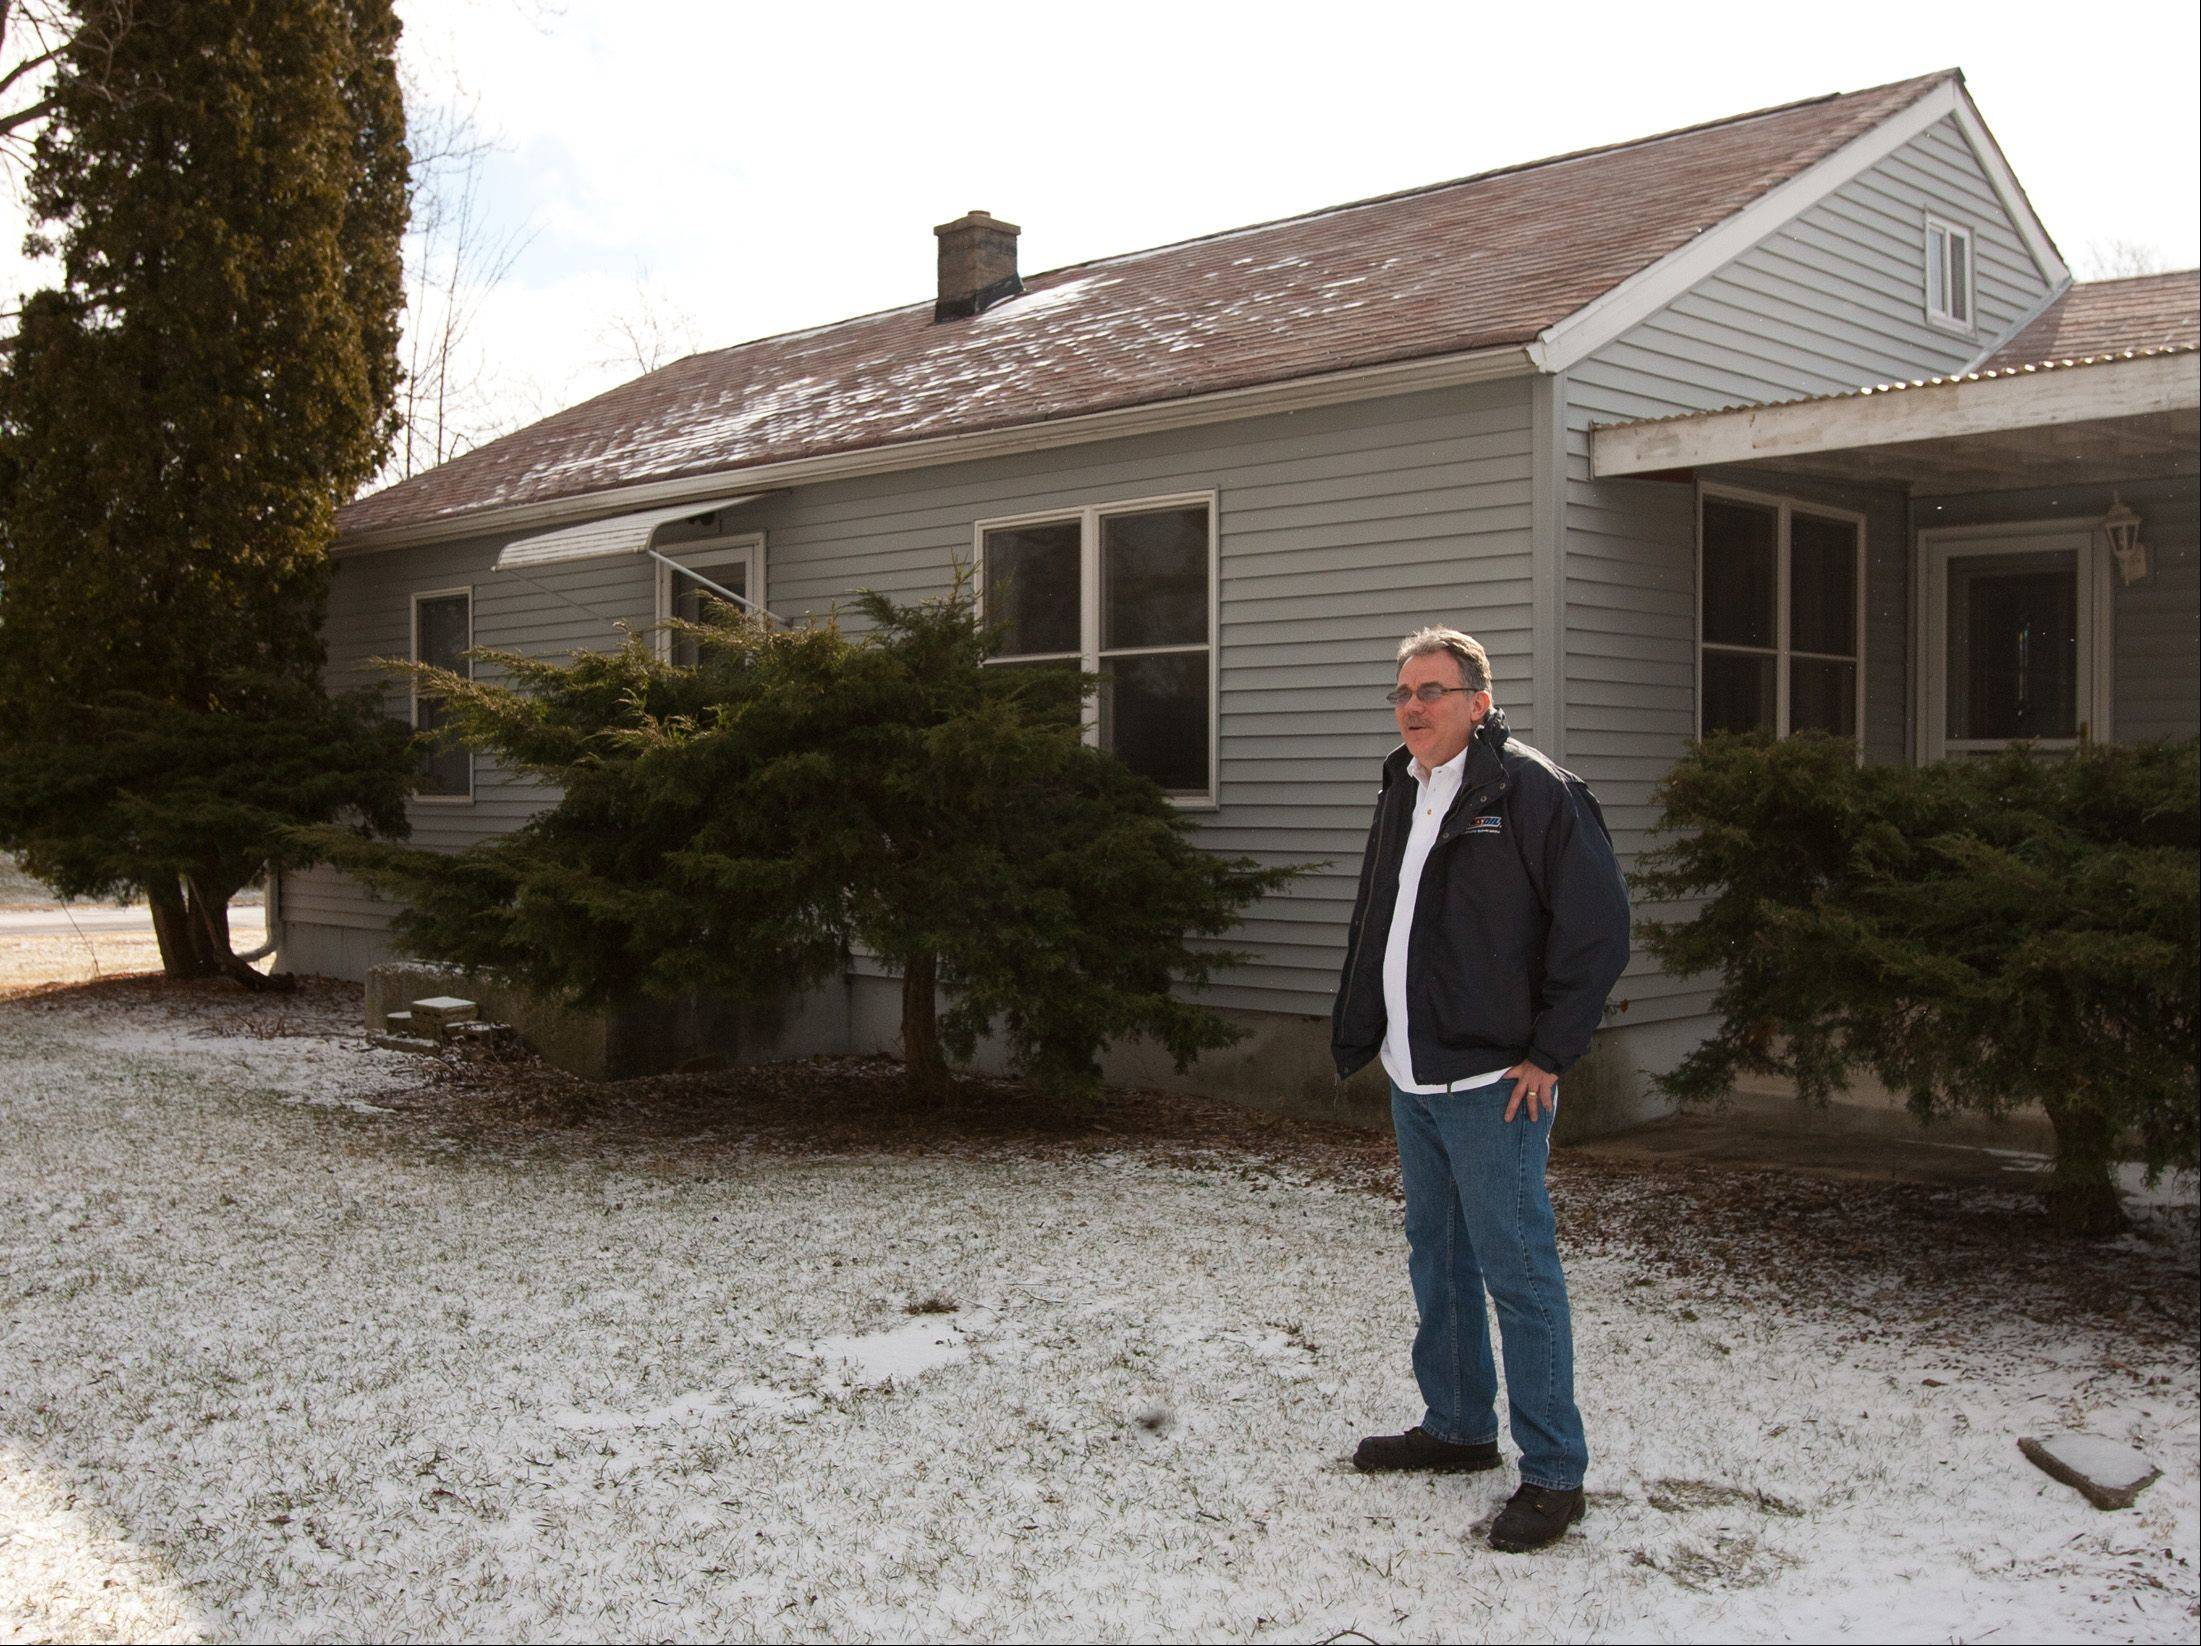 Oakbrook Terrace city officials say they'll work with historical society Director Bob Shanahan and his group to save a Sears Roebuck Homart home from the wrecking ball.